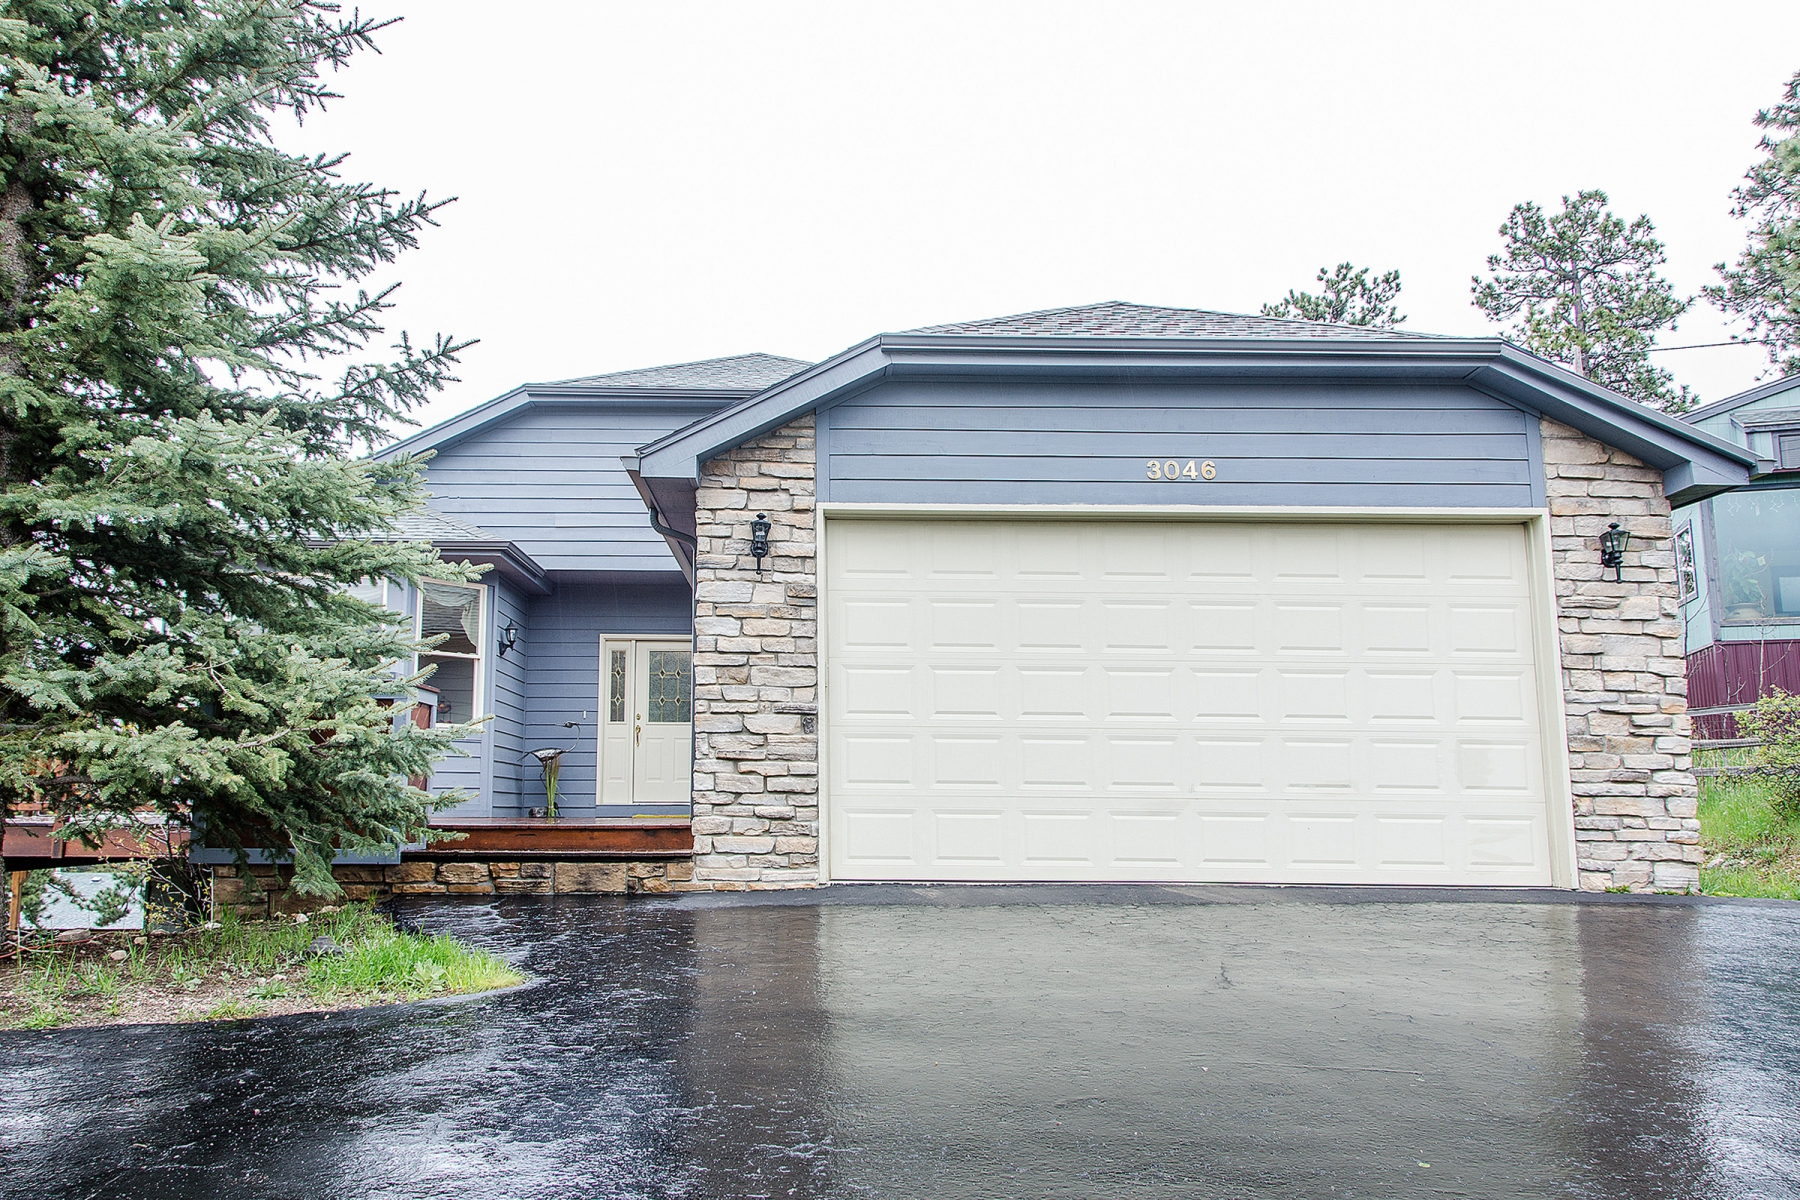 Single Family Home for Sale at Custom Built Raised Ranch with Mountain Views & Premier Location in Bergen Glen 3046 Sun Creek Ridge Evergreen, Colorado 80439 United States